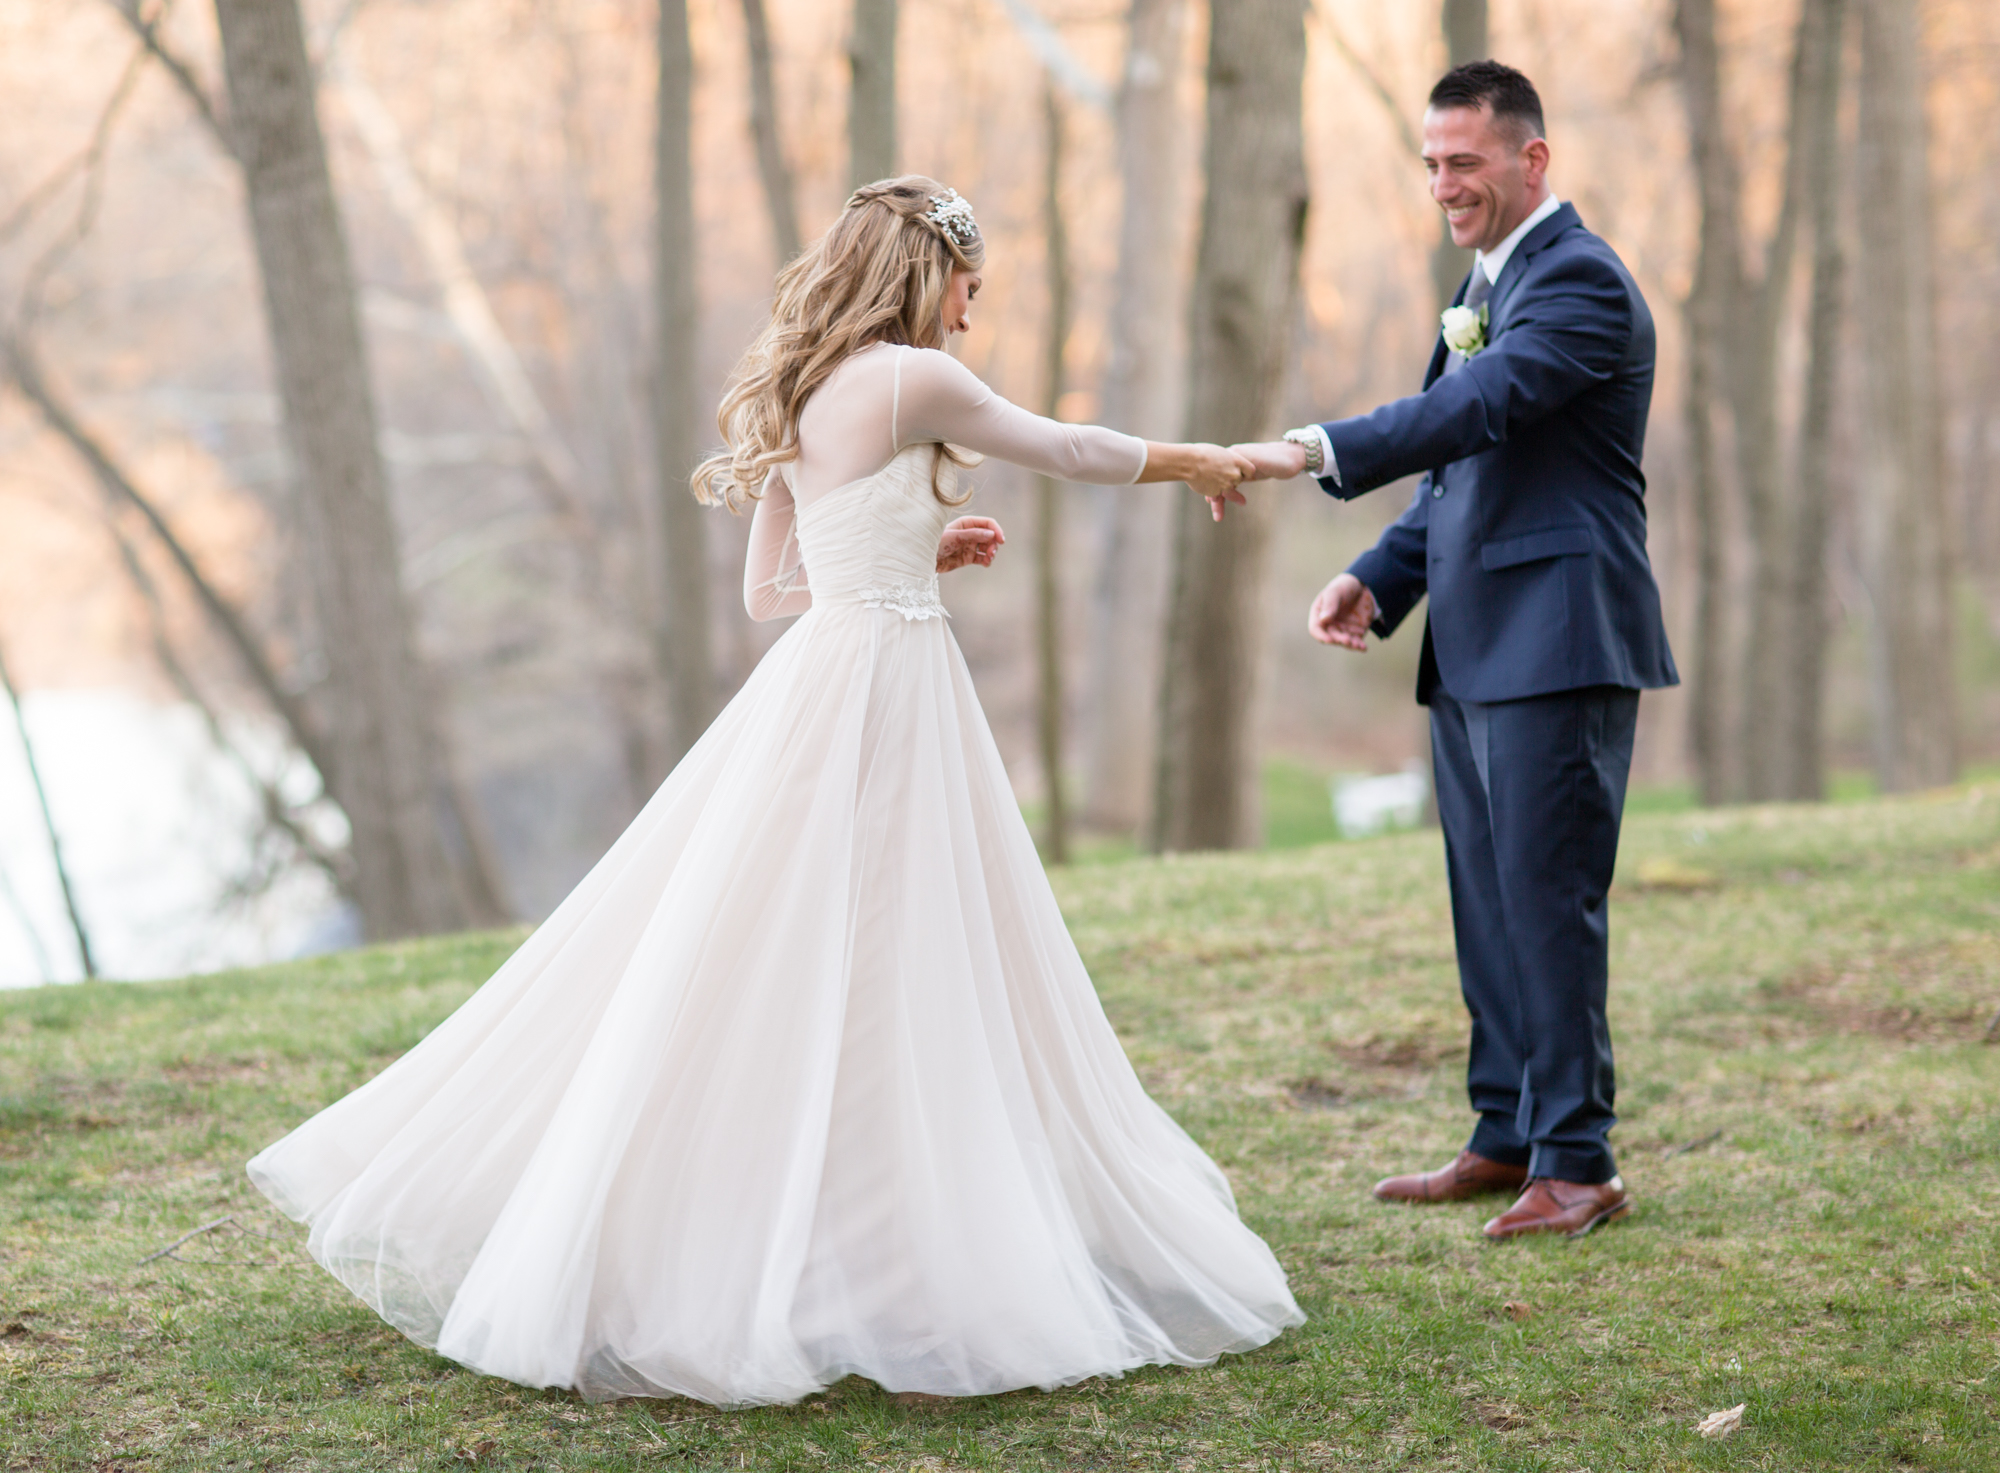 82Allegra_Anderson_Photography_CT_Wedding_Photographer_Riverview_Simsbury_Saleh_Web